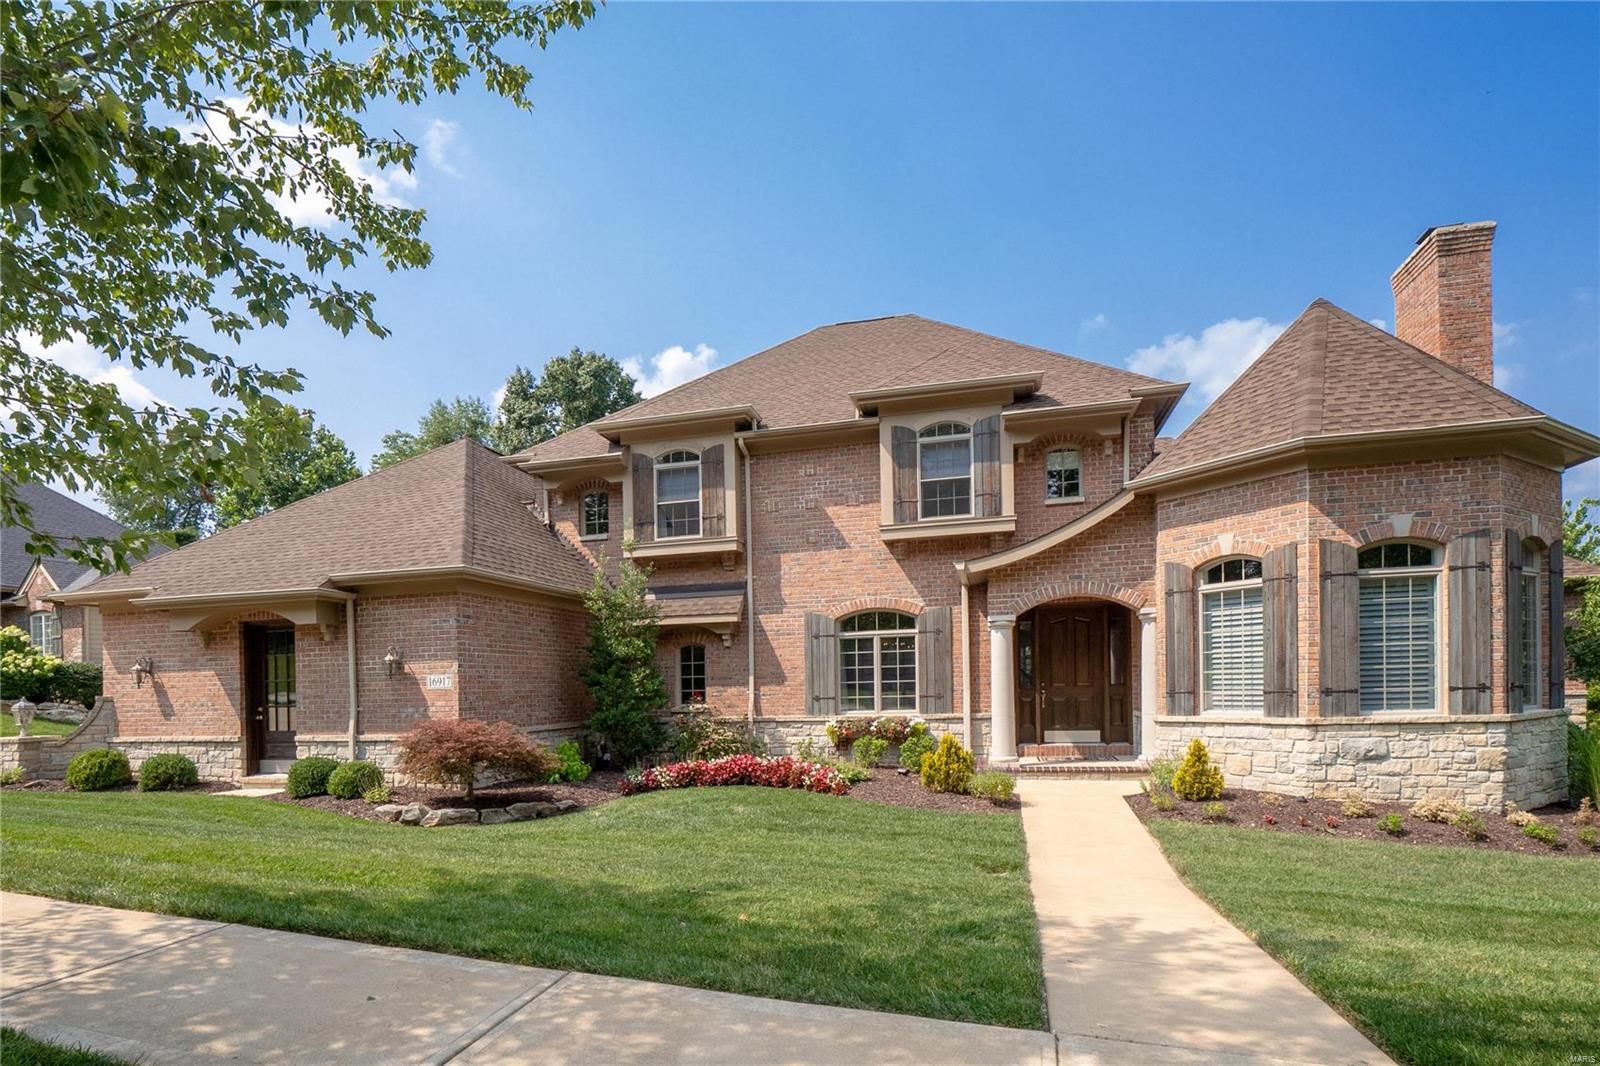 16917 Todd Evan Trail Road, Chesterfield, MO 63005